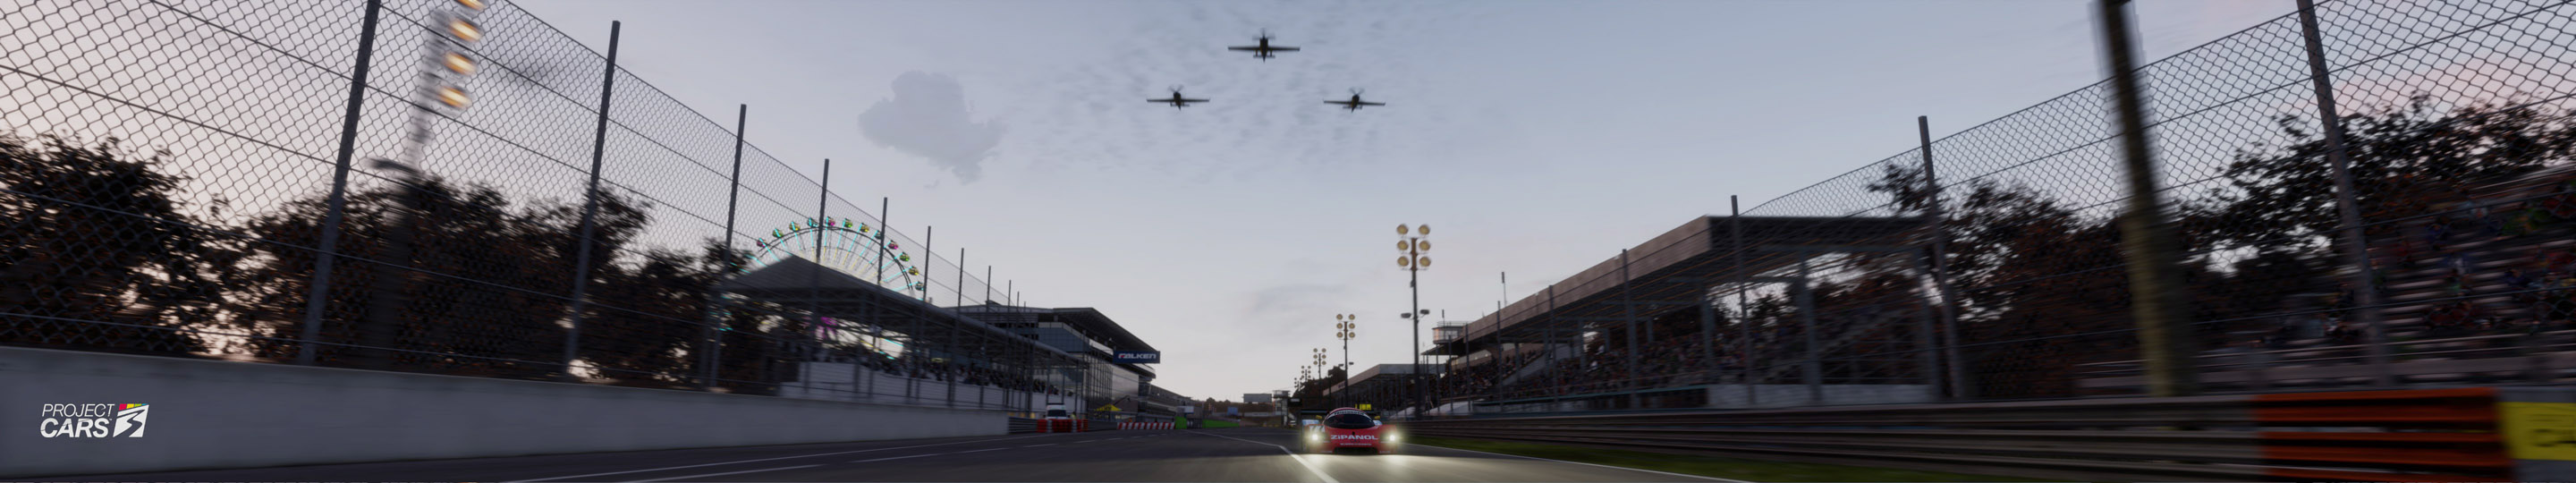 3a PROJECT CARS GROUP C at MONZA copy.jpg